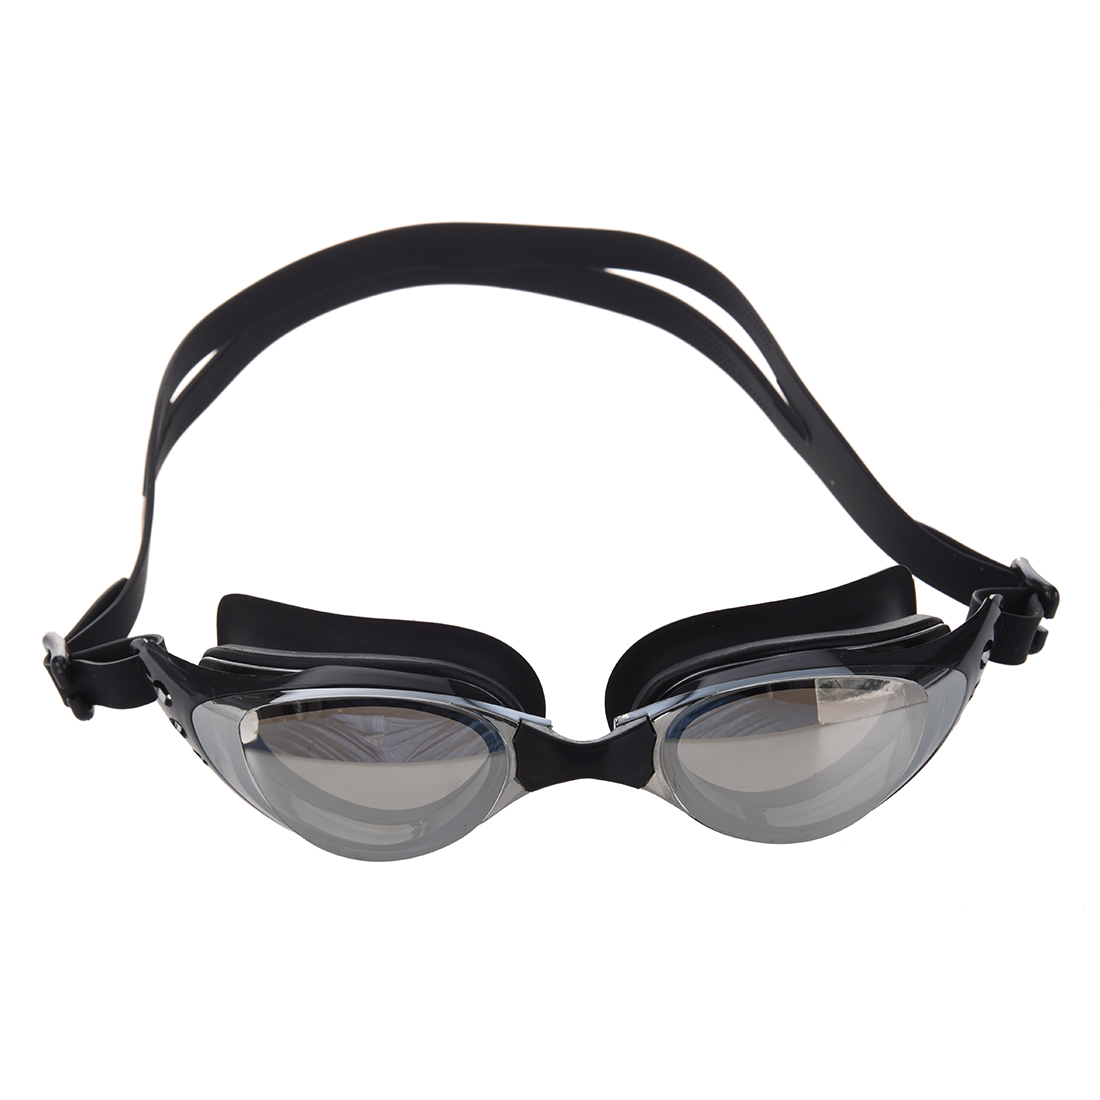 Black Swim Swimming Water Silicone Pool Adult Goggles